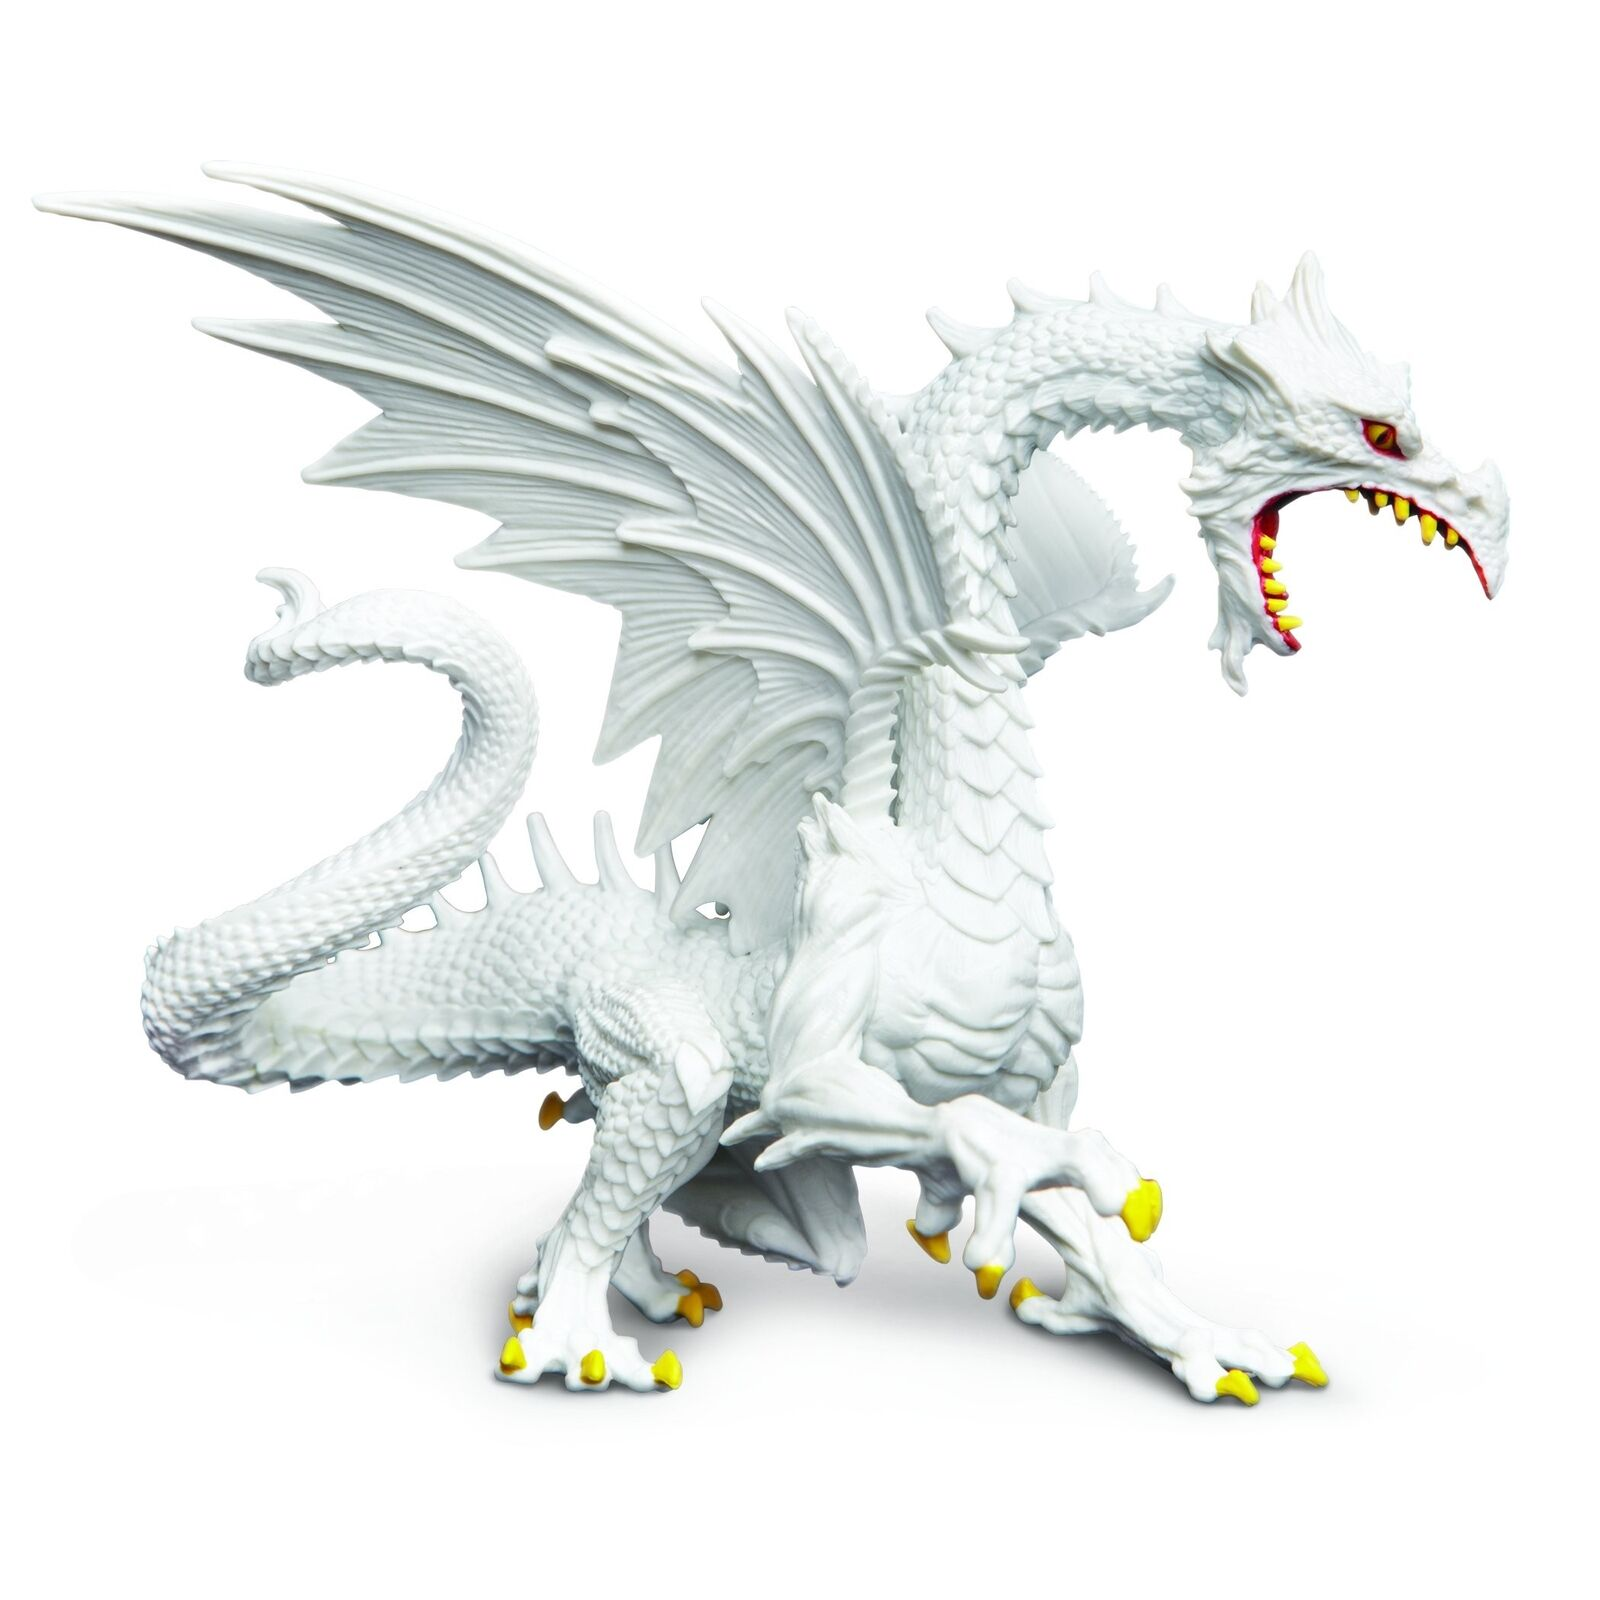 Glow-In-The-Dark Snow Dragon Fluoreszierender Schneedrache 10120 Snow Dragon